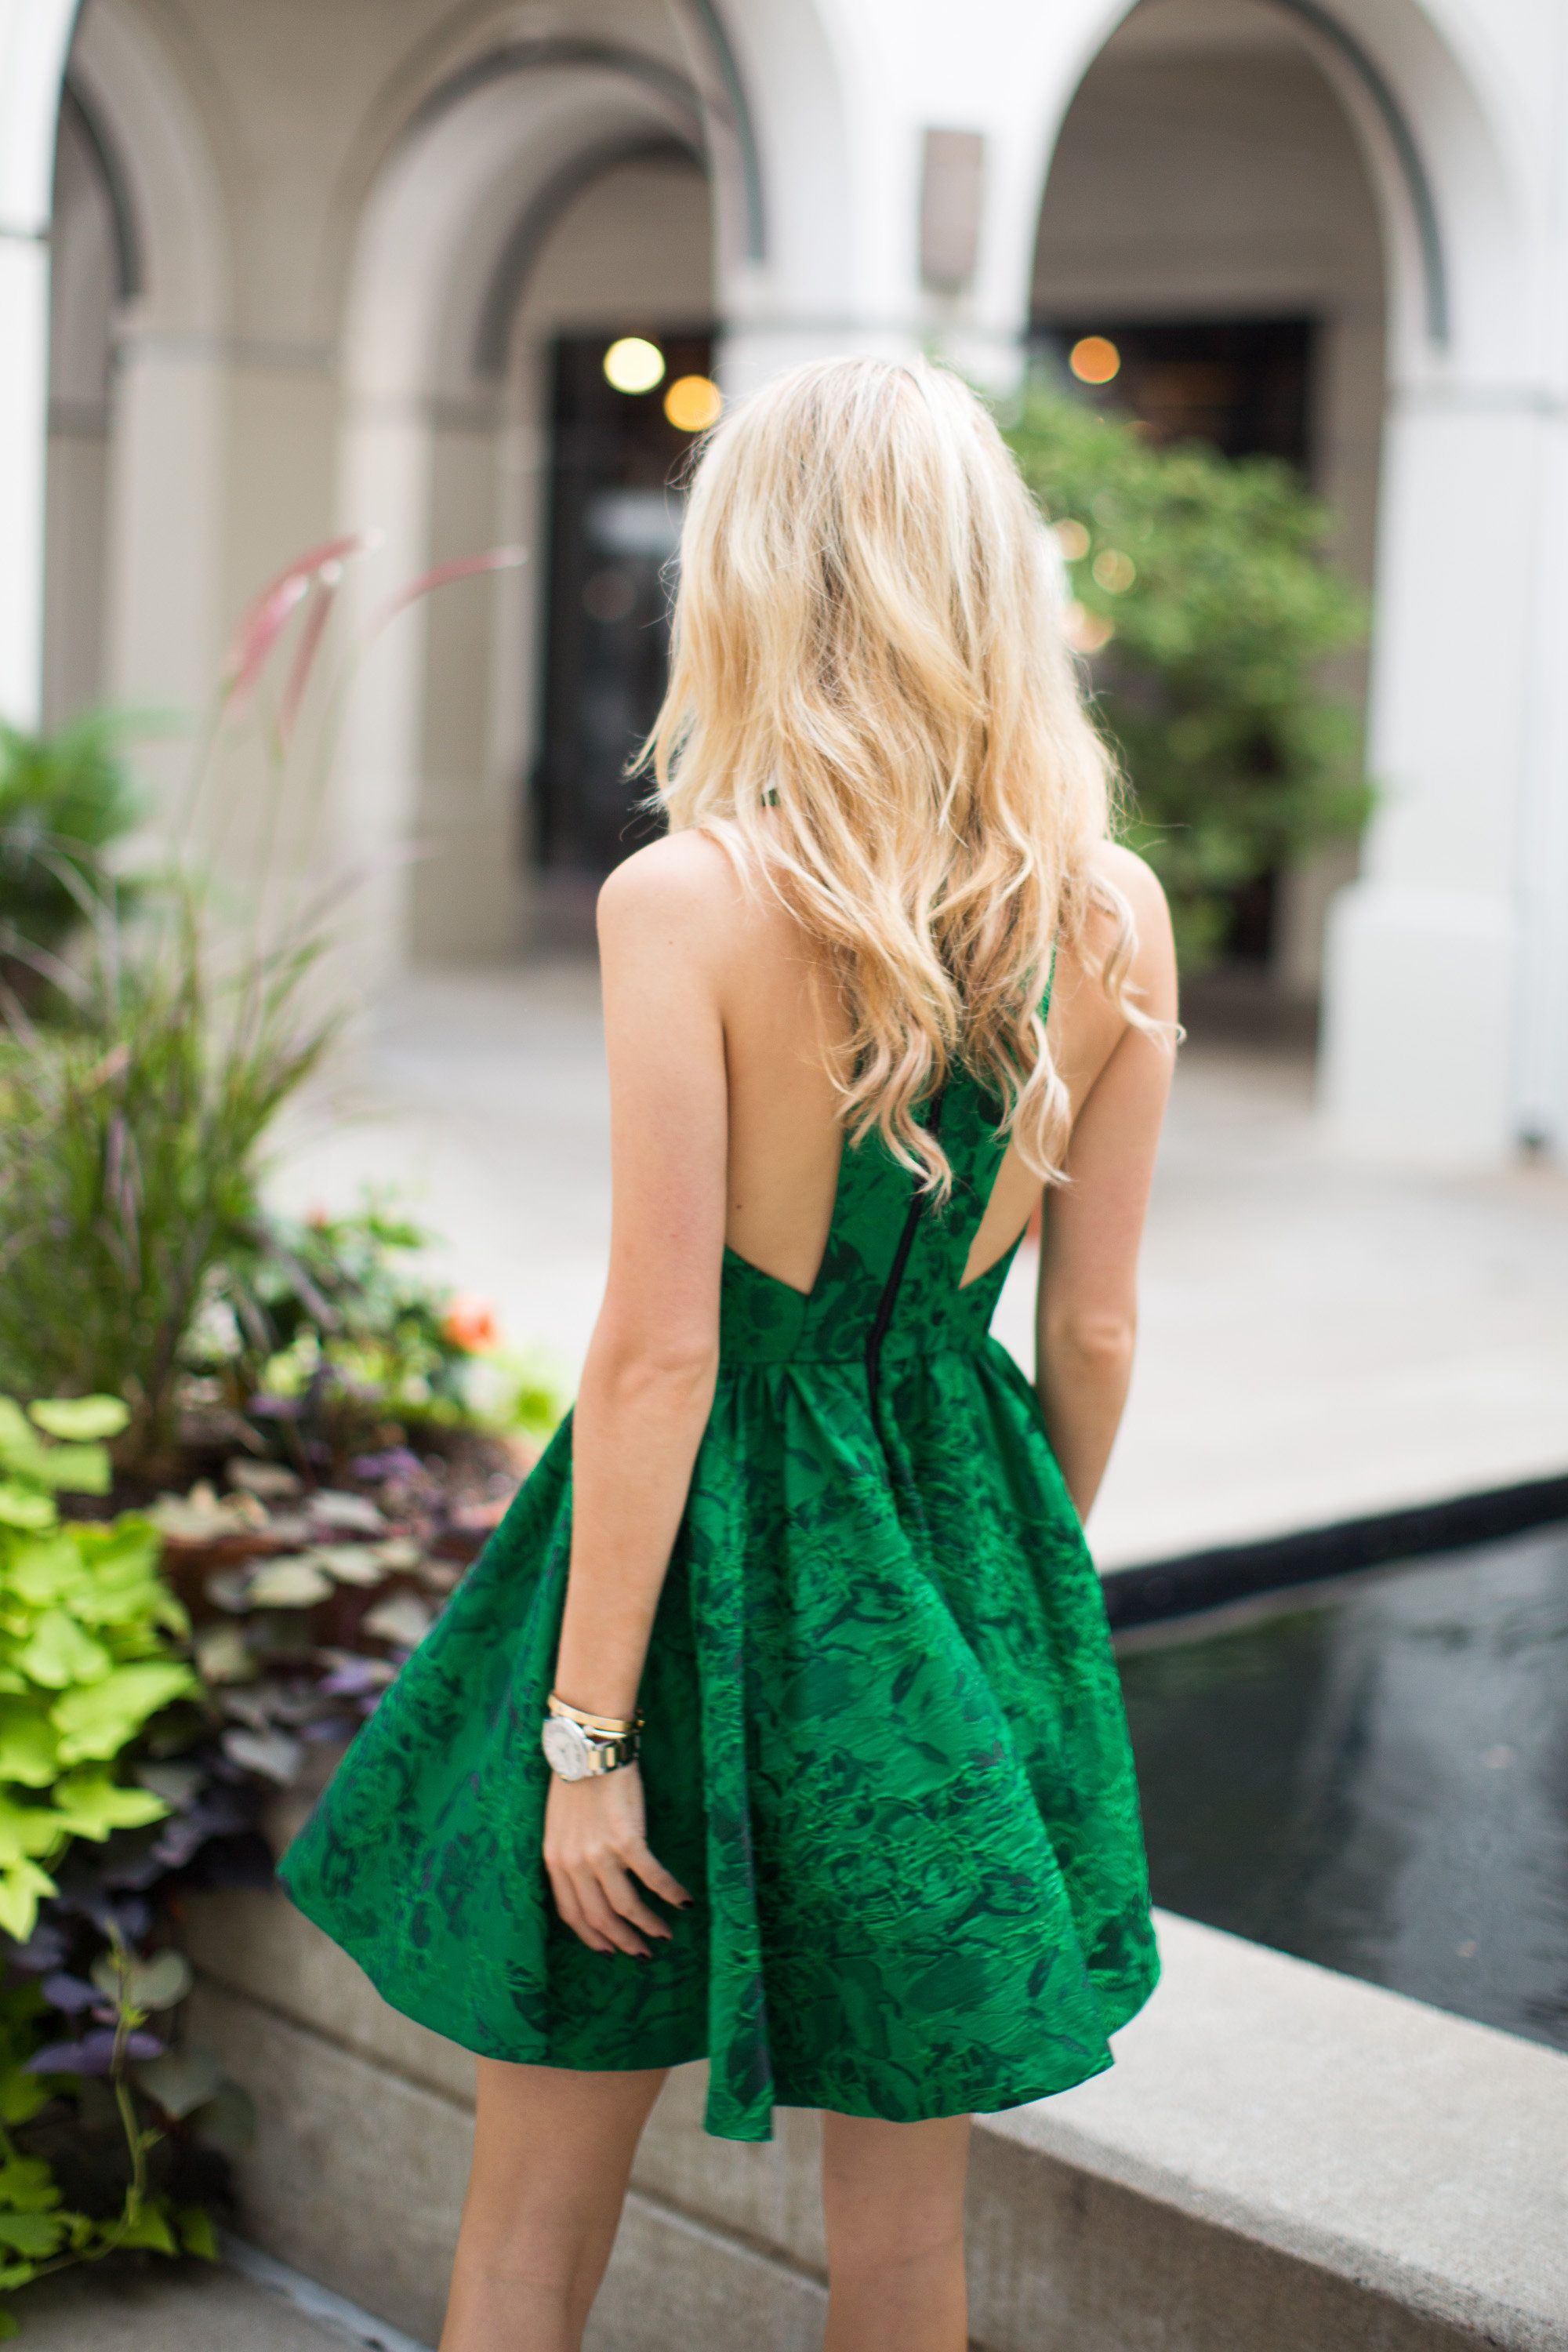 Green dress denim jacket  Pin by bree lanez on threads  Pinterest  Alice olivia Alice and